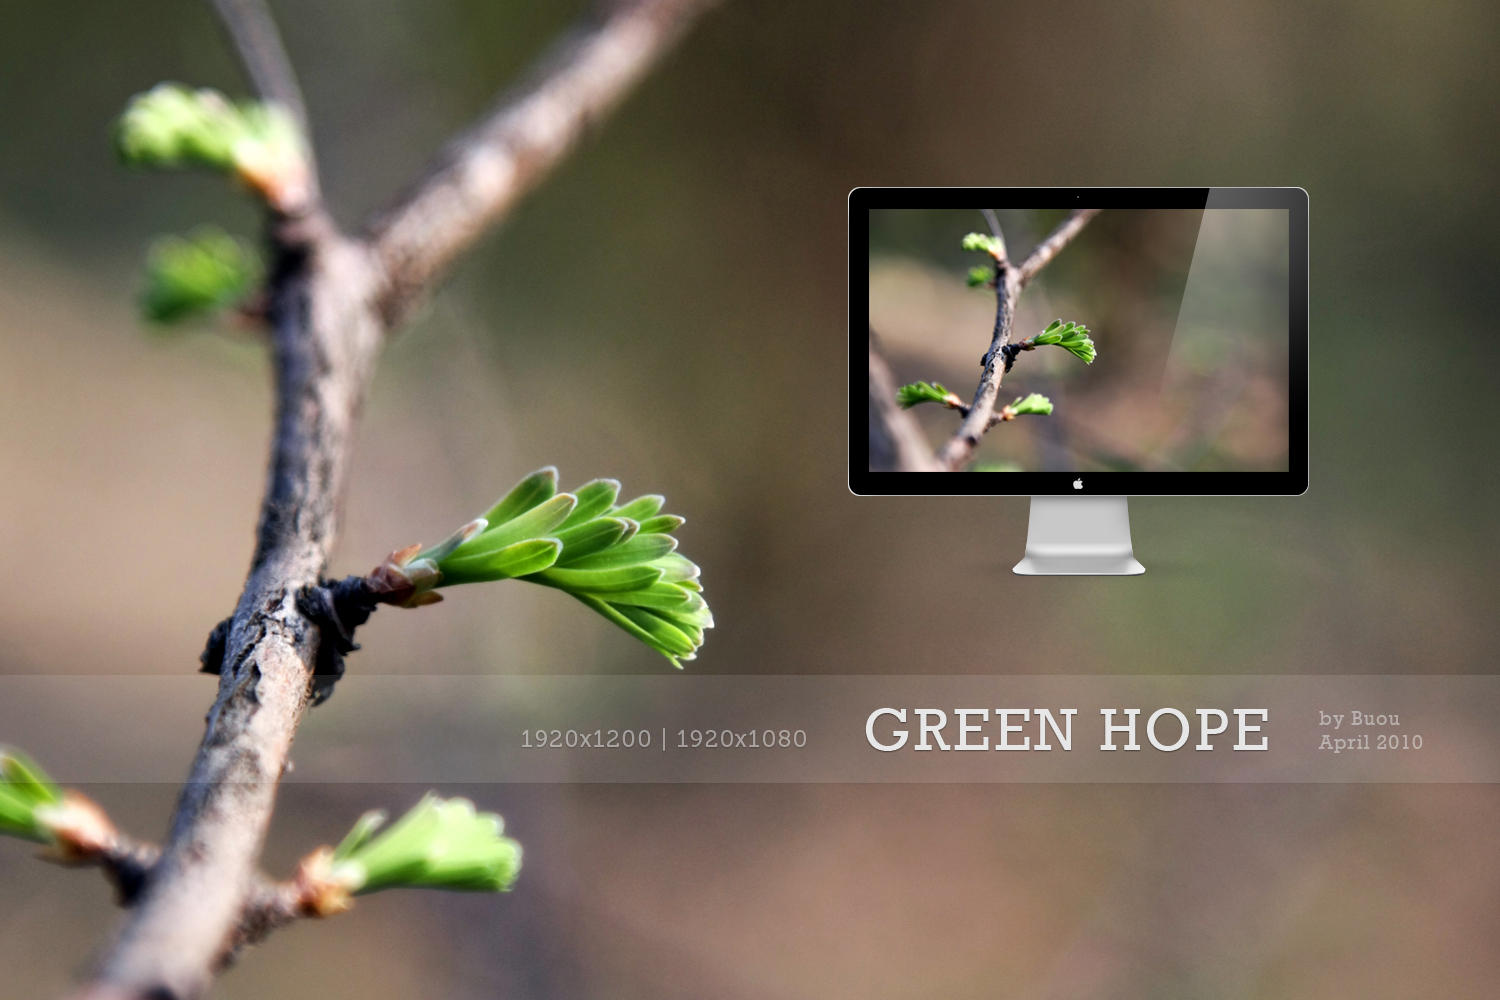 HD Wallpapers Green Hope by Buou